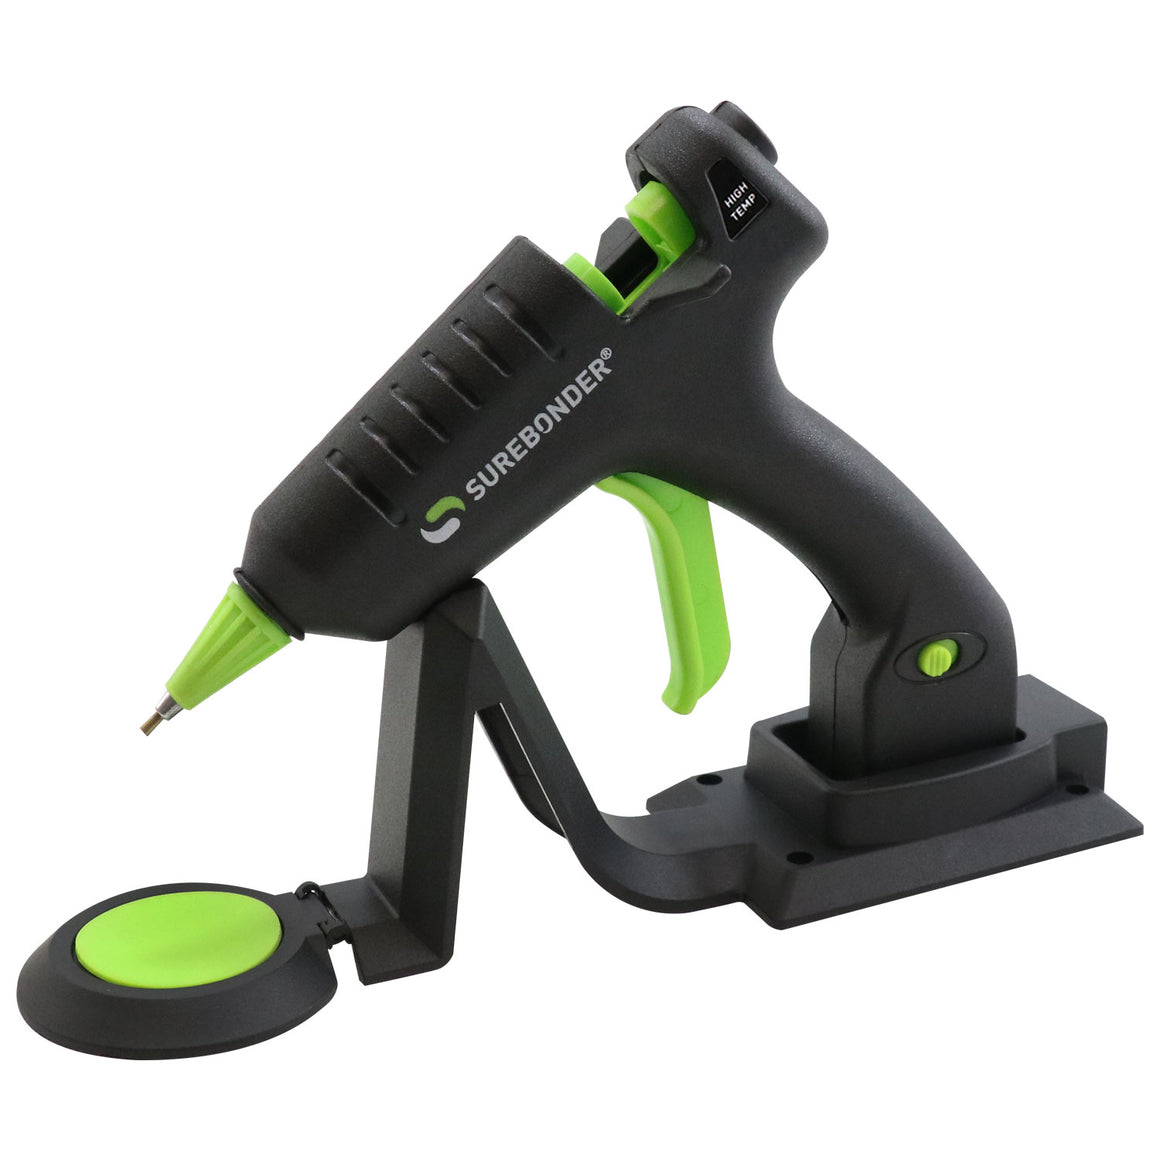 Surebonder mid-size cordless hot glue gun with precise detail tip, resting on heating stand with glue pad, 20 watts, CL-195F